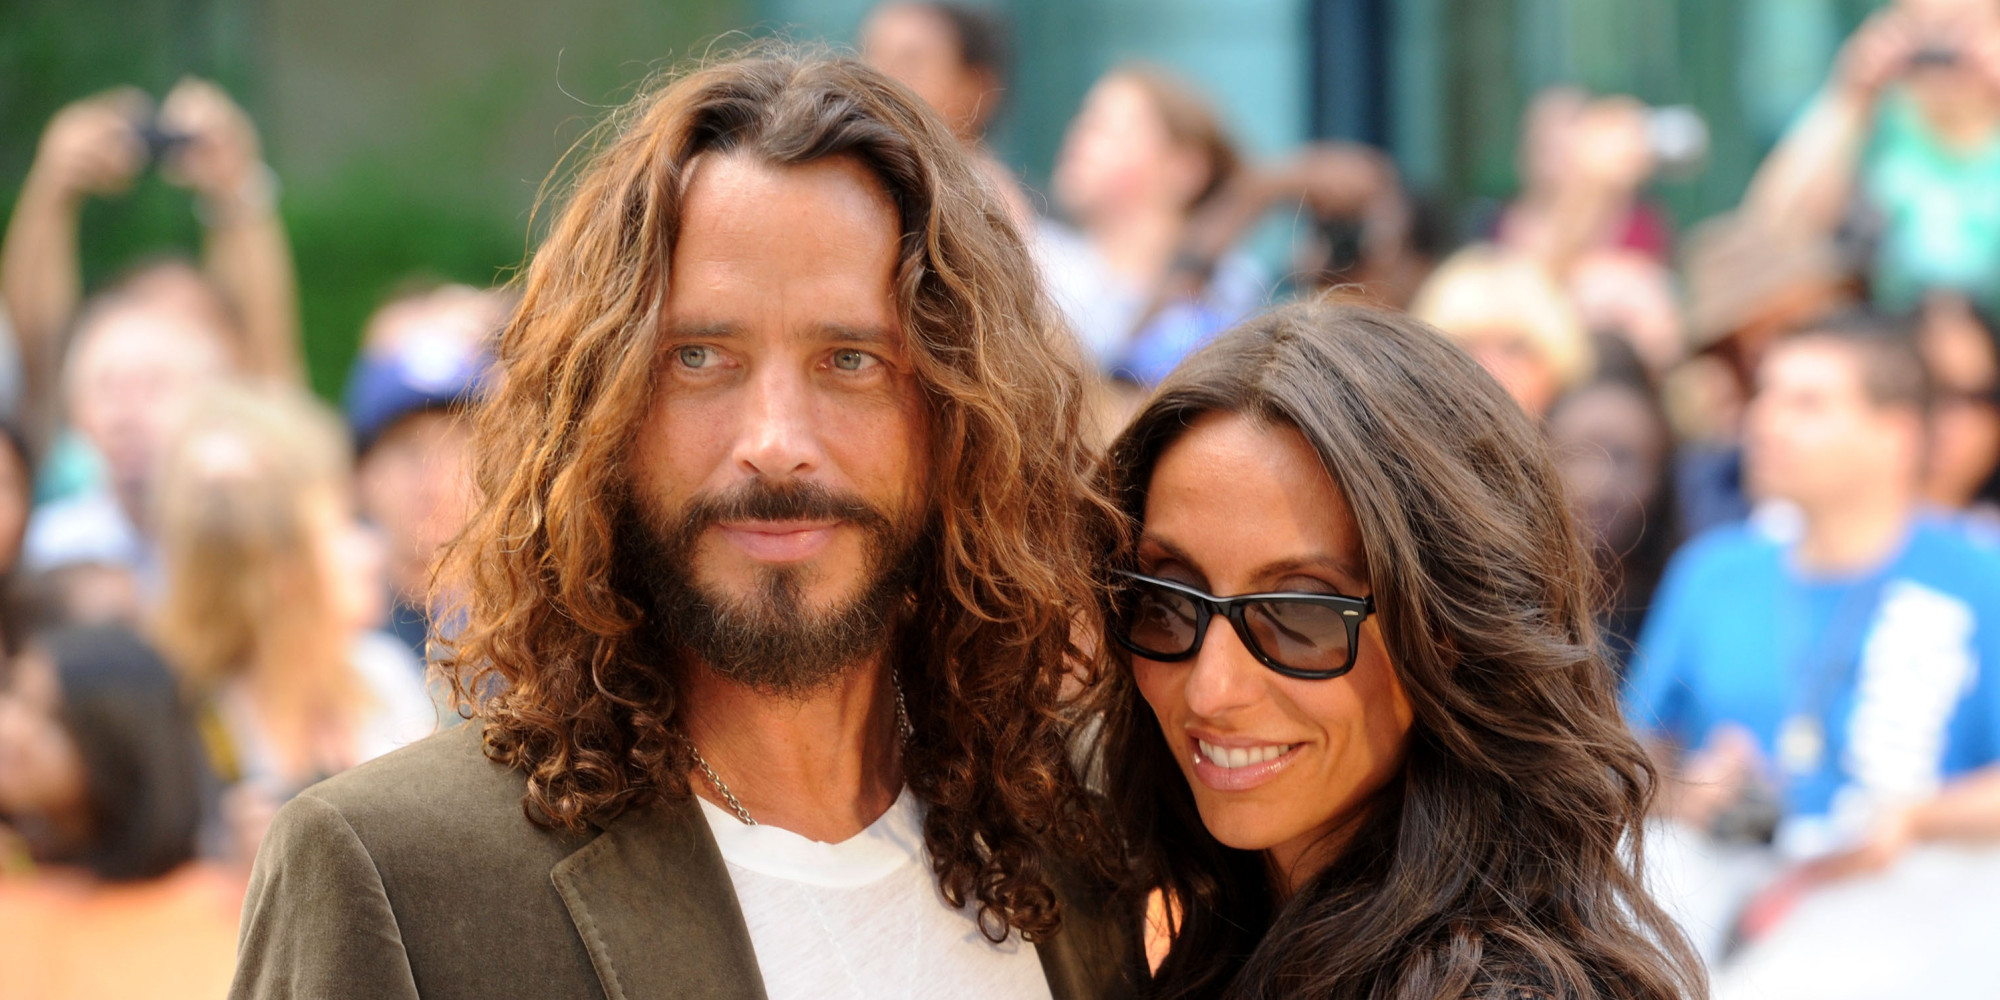 Chris Cornell: Chris Cornell's Wife Blames Anxiety Meds For His Death